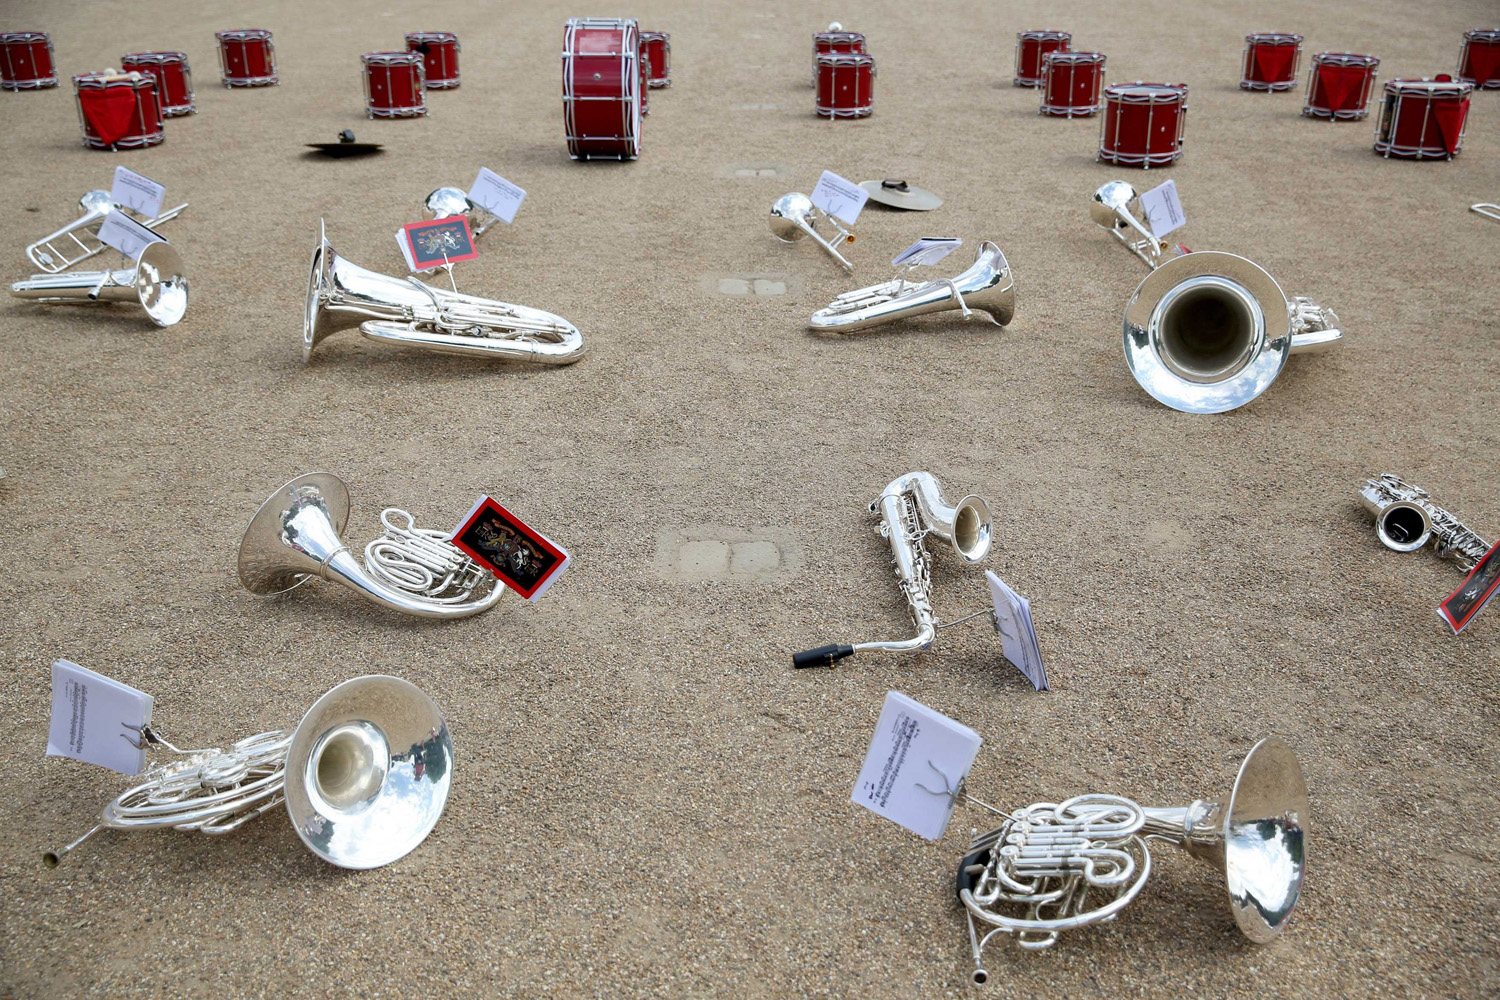 June 2, 2014. Instruments are left on the ground during a break as members of the Royal Marines Band rehearse for Beating Retreat on Horse Guards Parade in London.